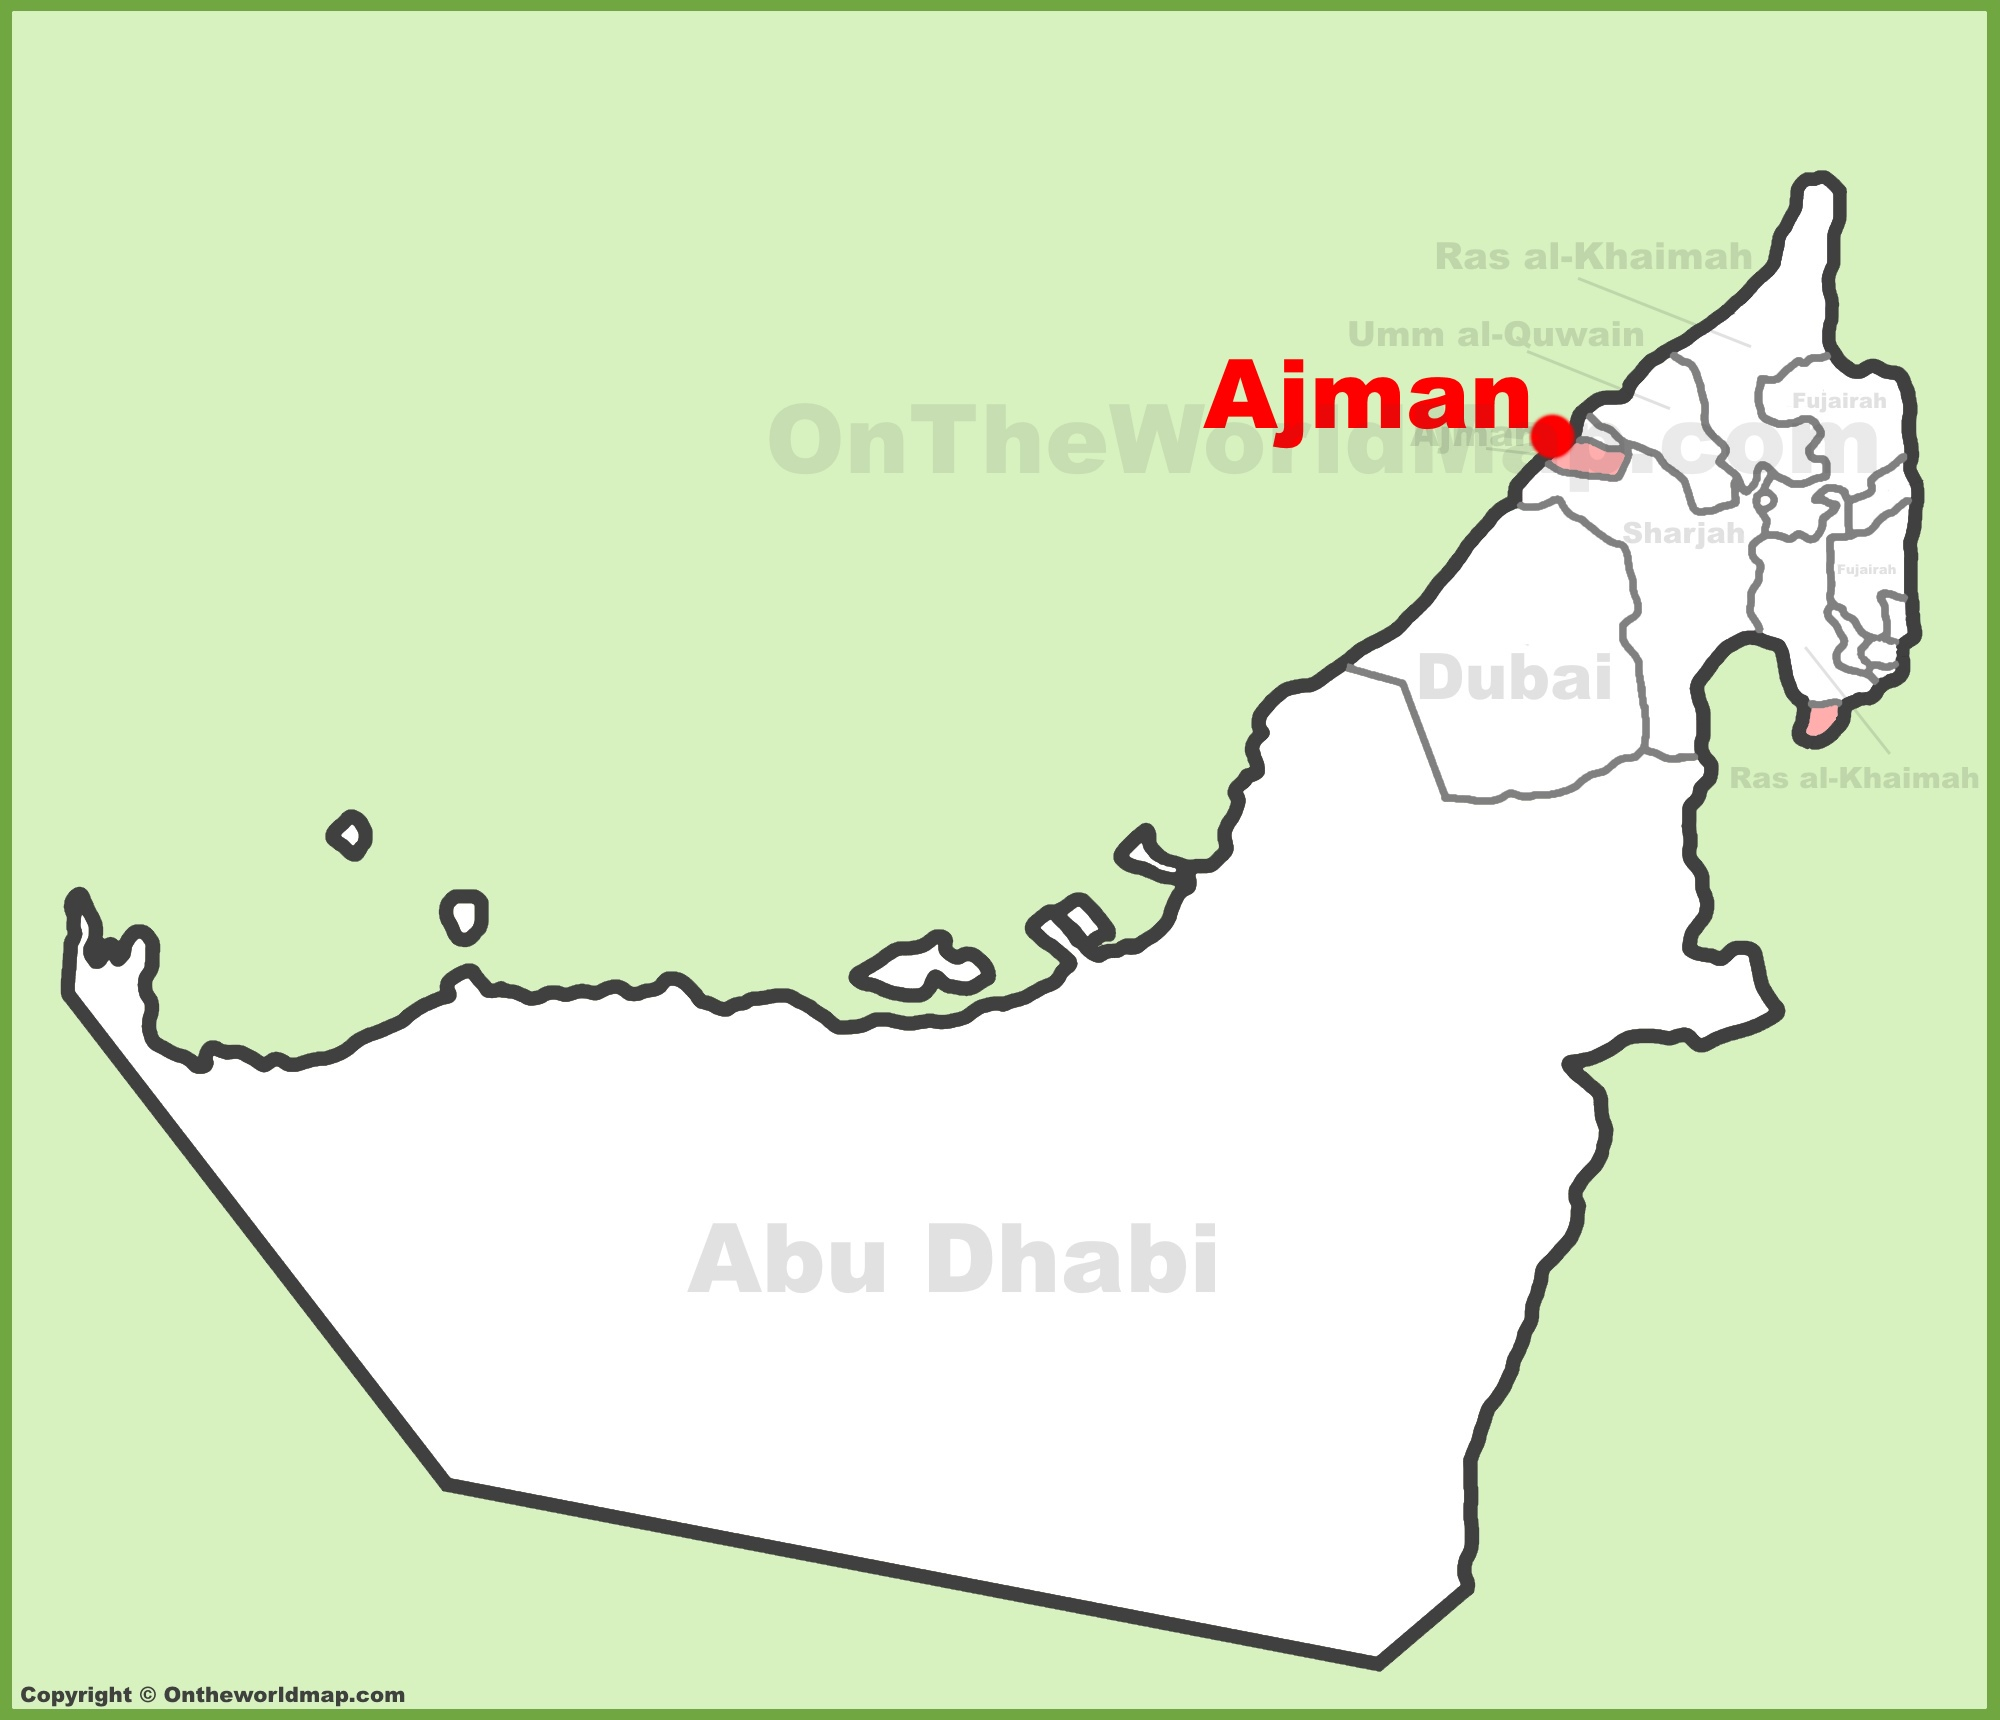 Ajman Location On The UAE United Arab Emirates Map - United arab emirates map